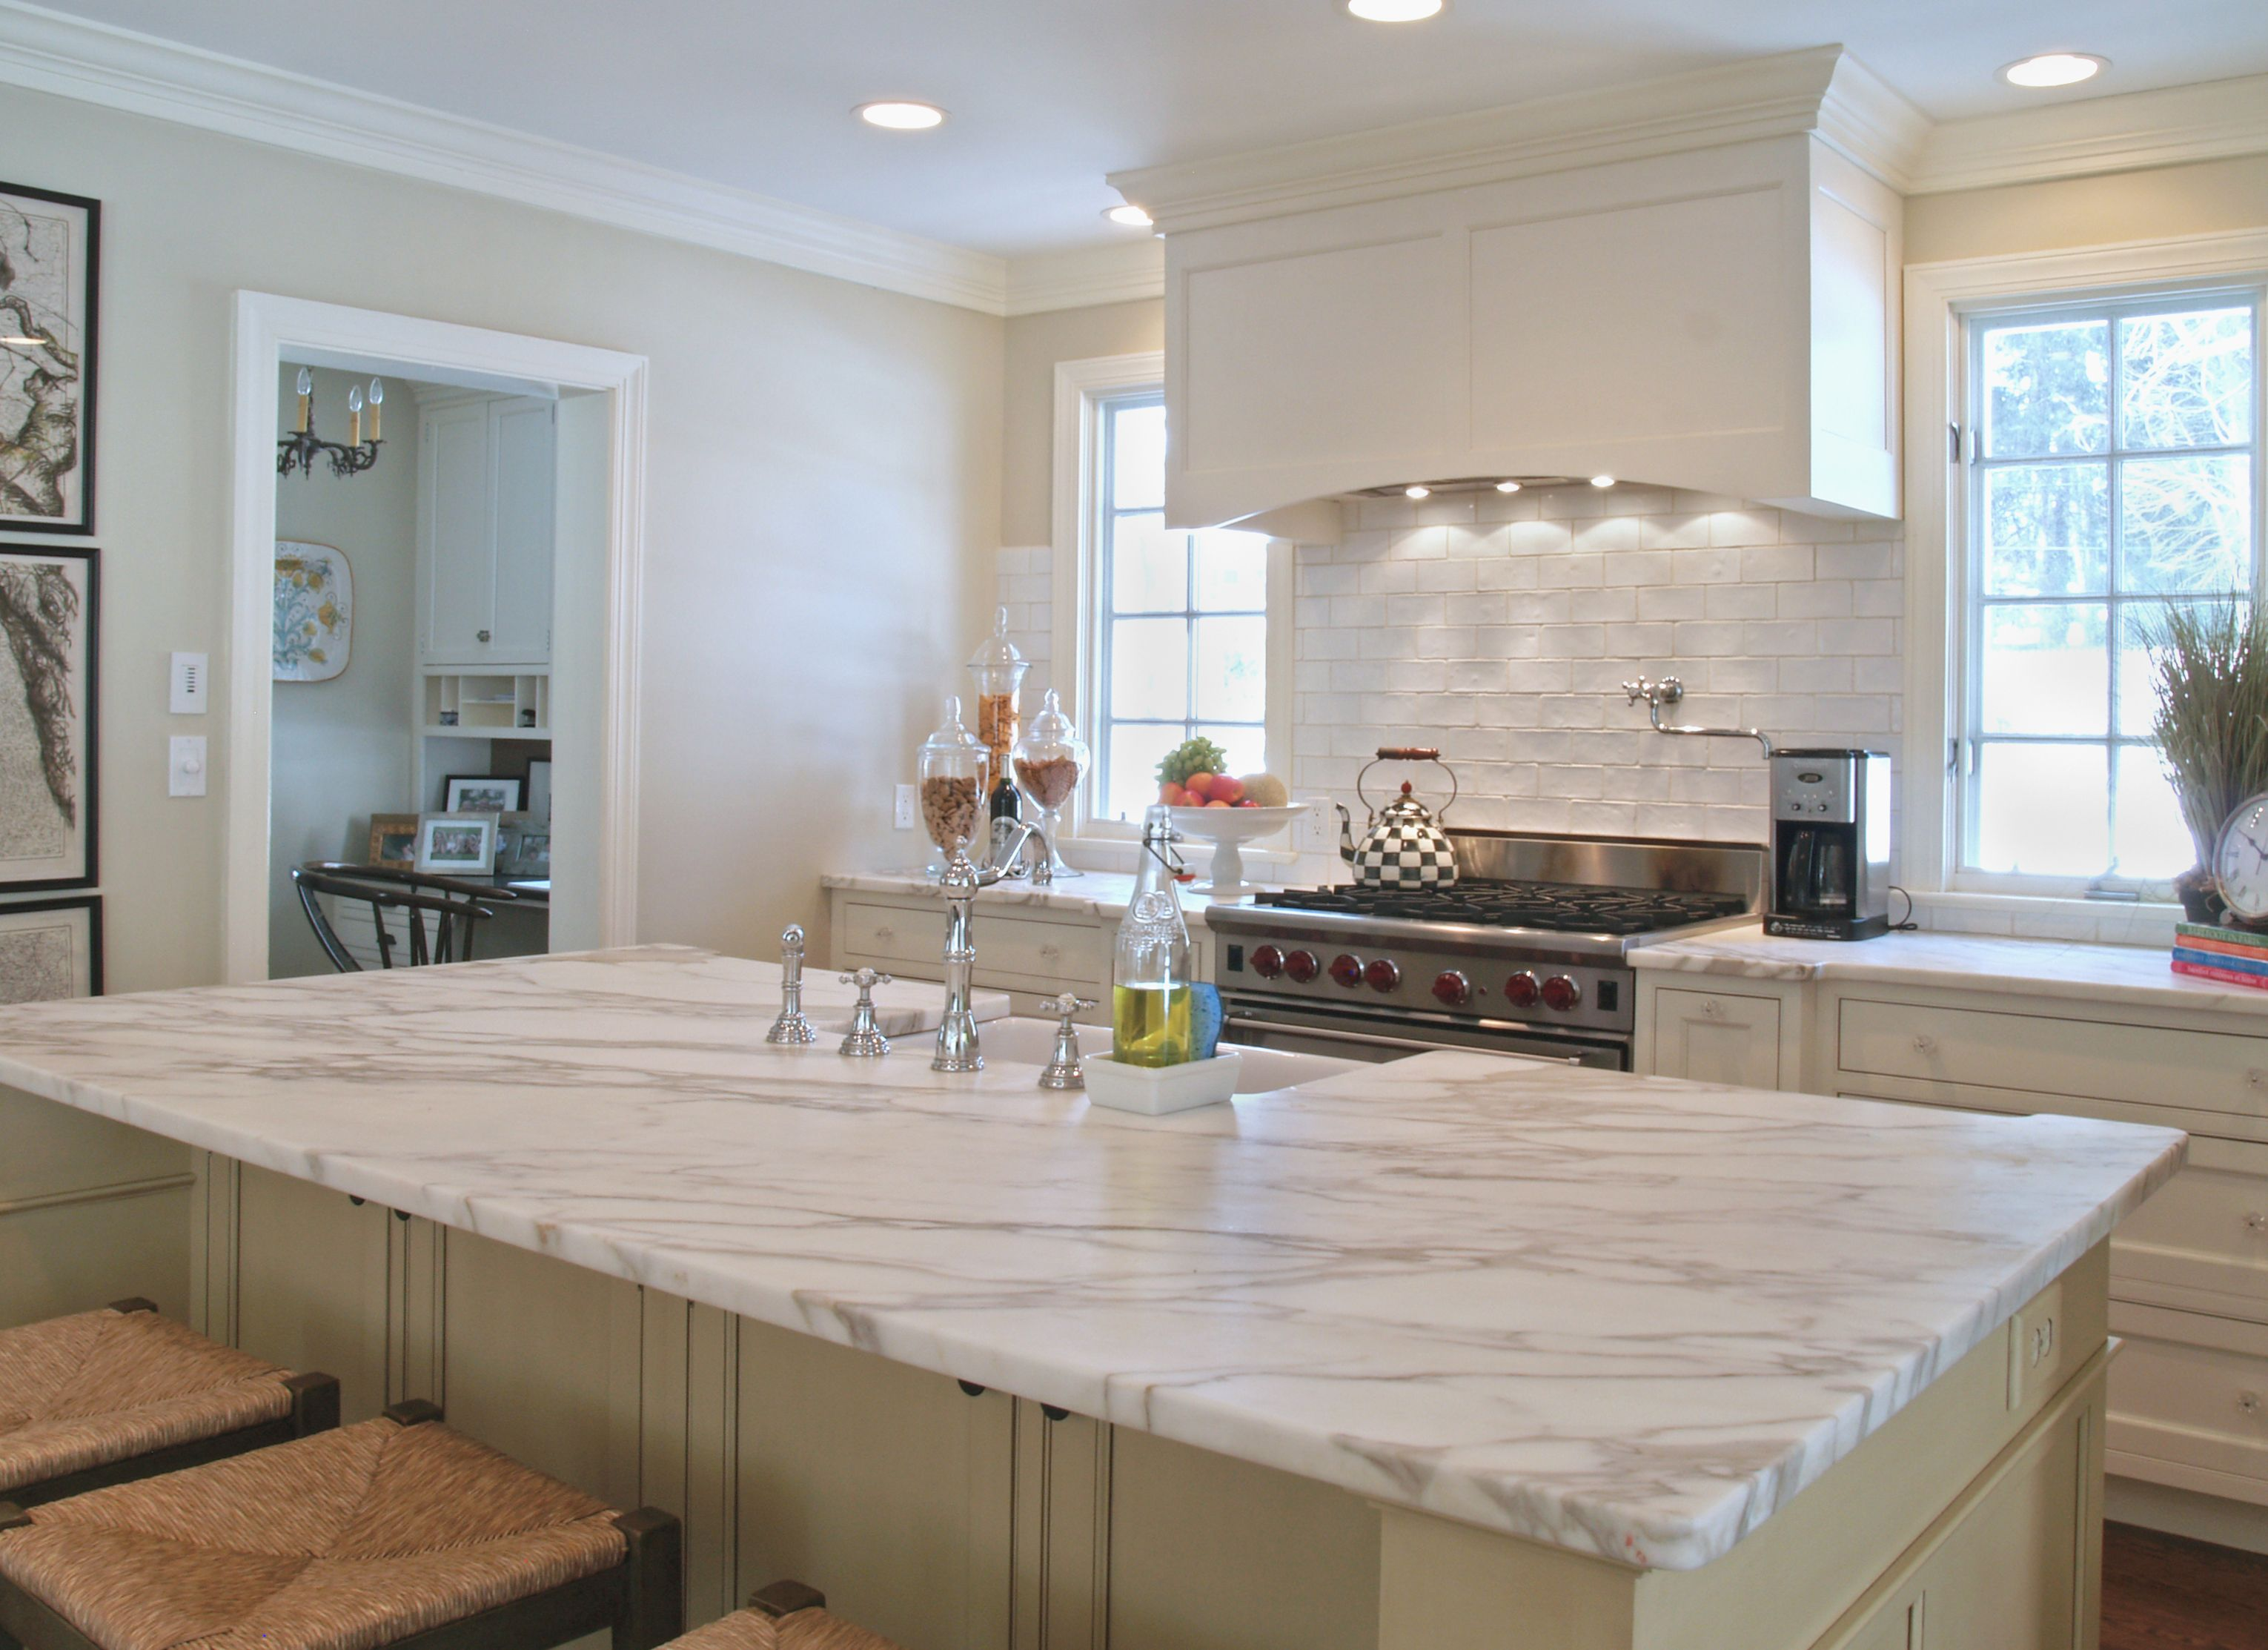 Kitchen White Marble Countertop On Big Kitchen Island With